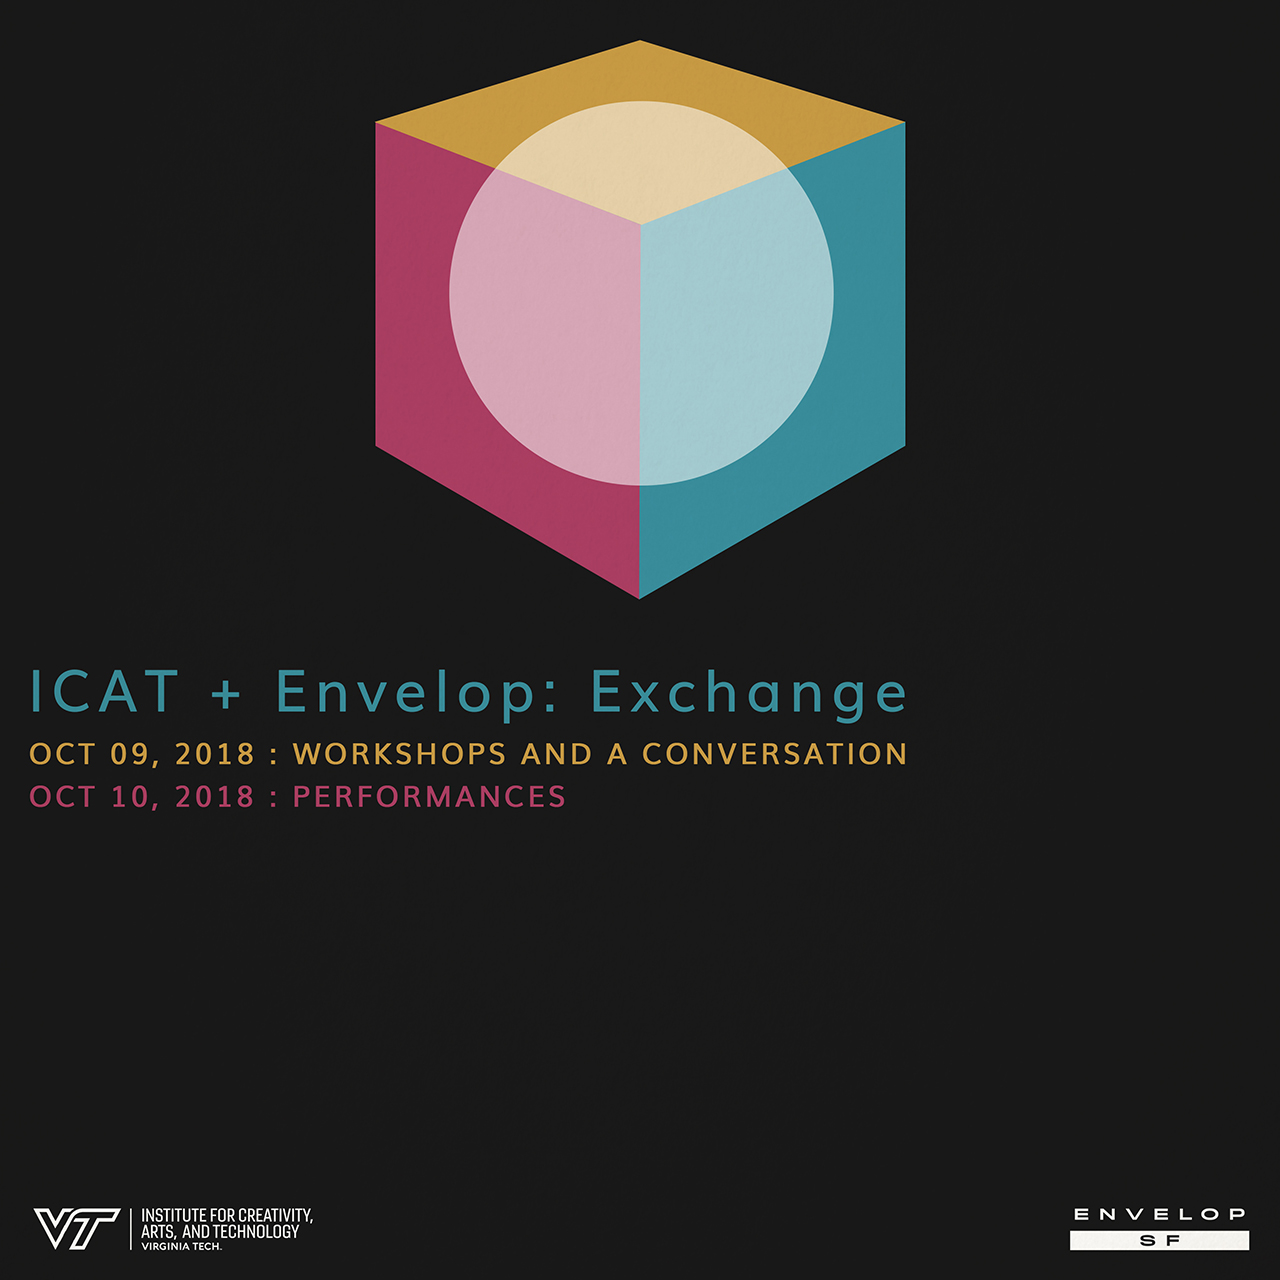 ICAT + Envelop: Exchange   Tues + Wed, October 9-10, 2018 | At Envelop SF | 7:00 PM doors (for both nights)